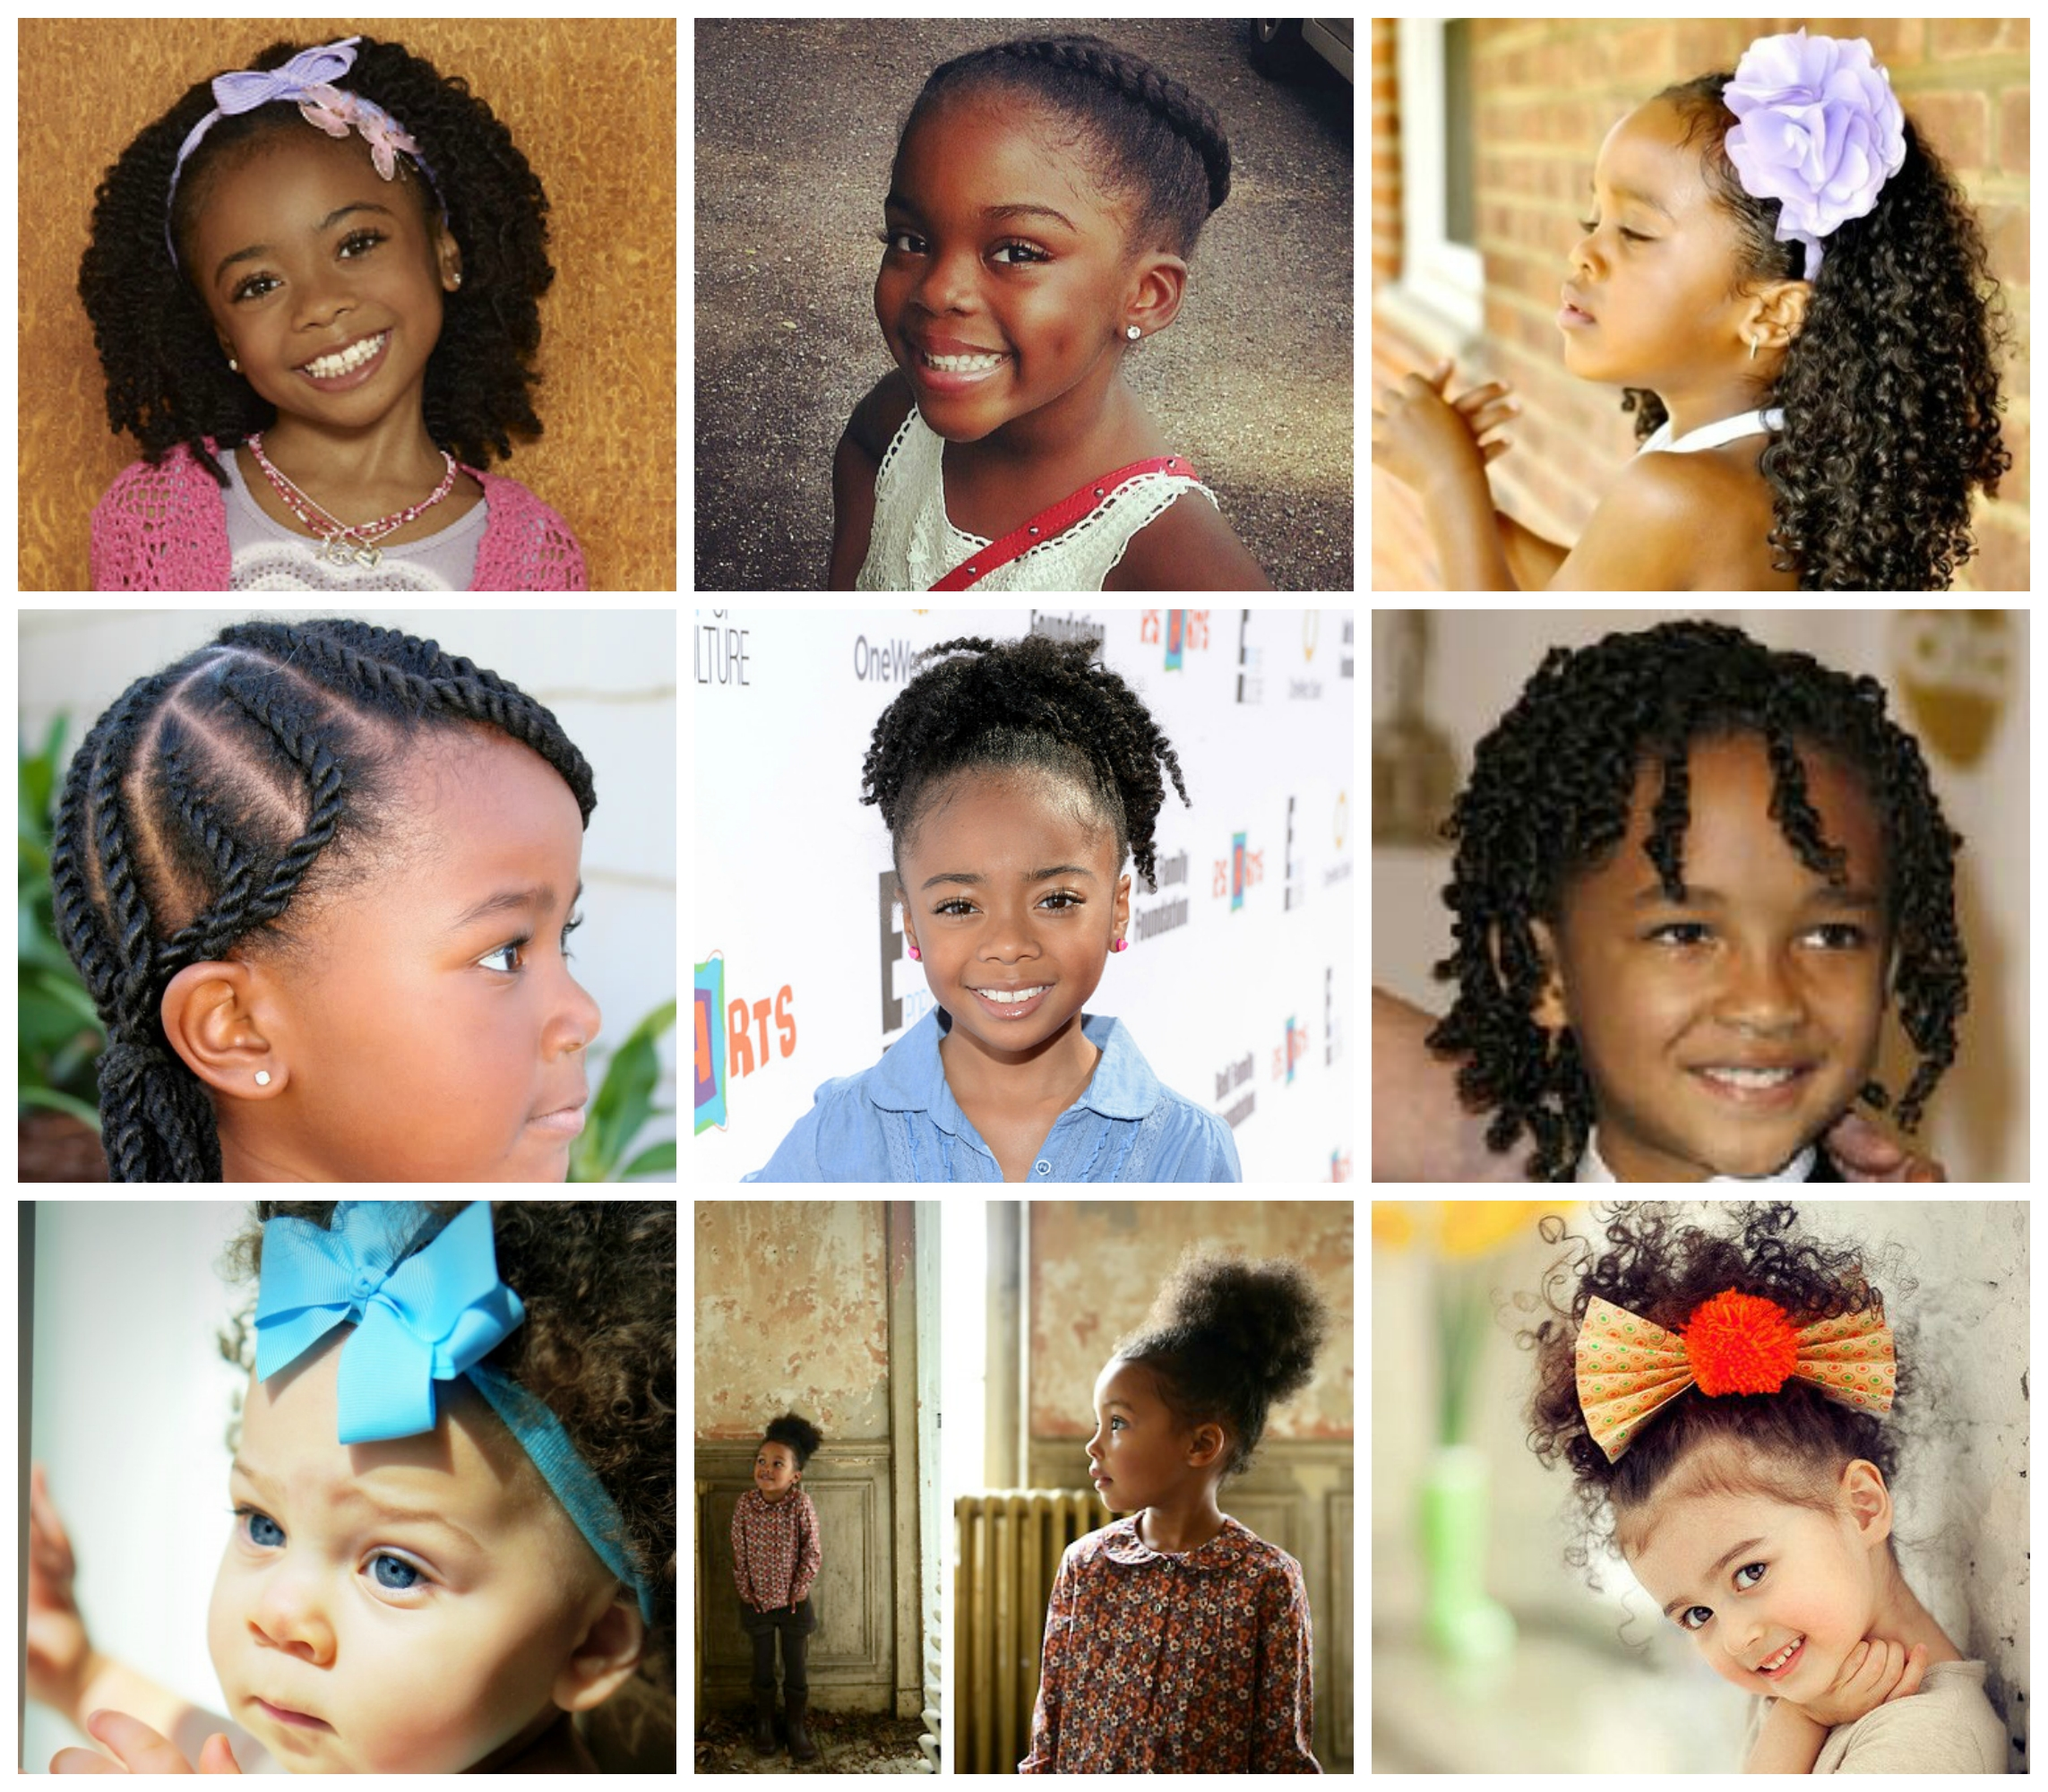 10 Unique First Day Of School Hair Ideas back to school hairstyle ideas for kids and teens my curls 2020